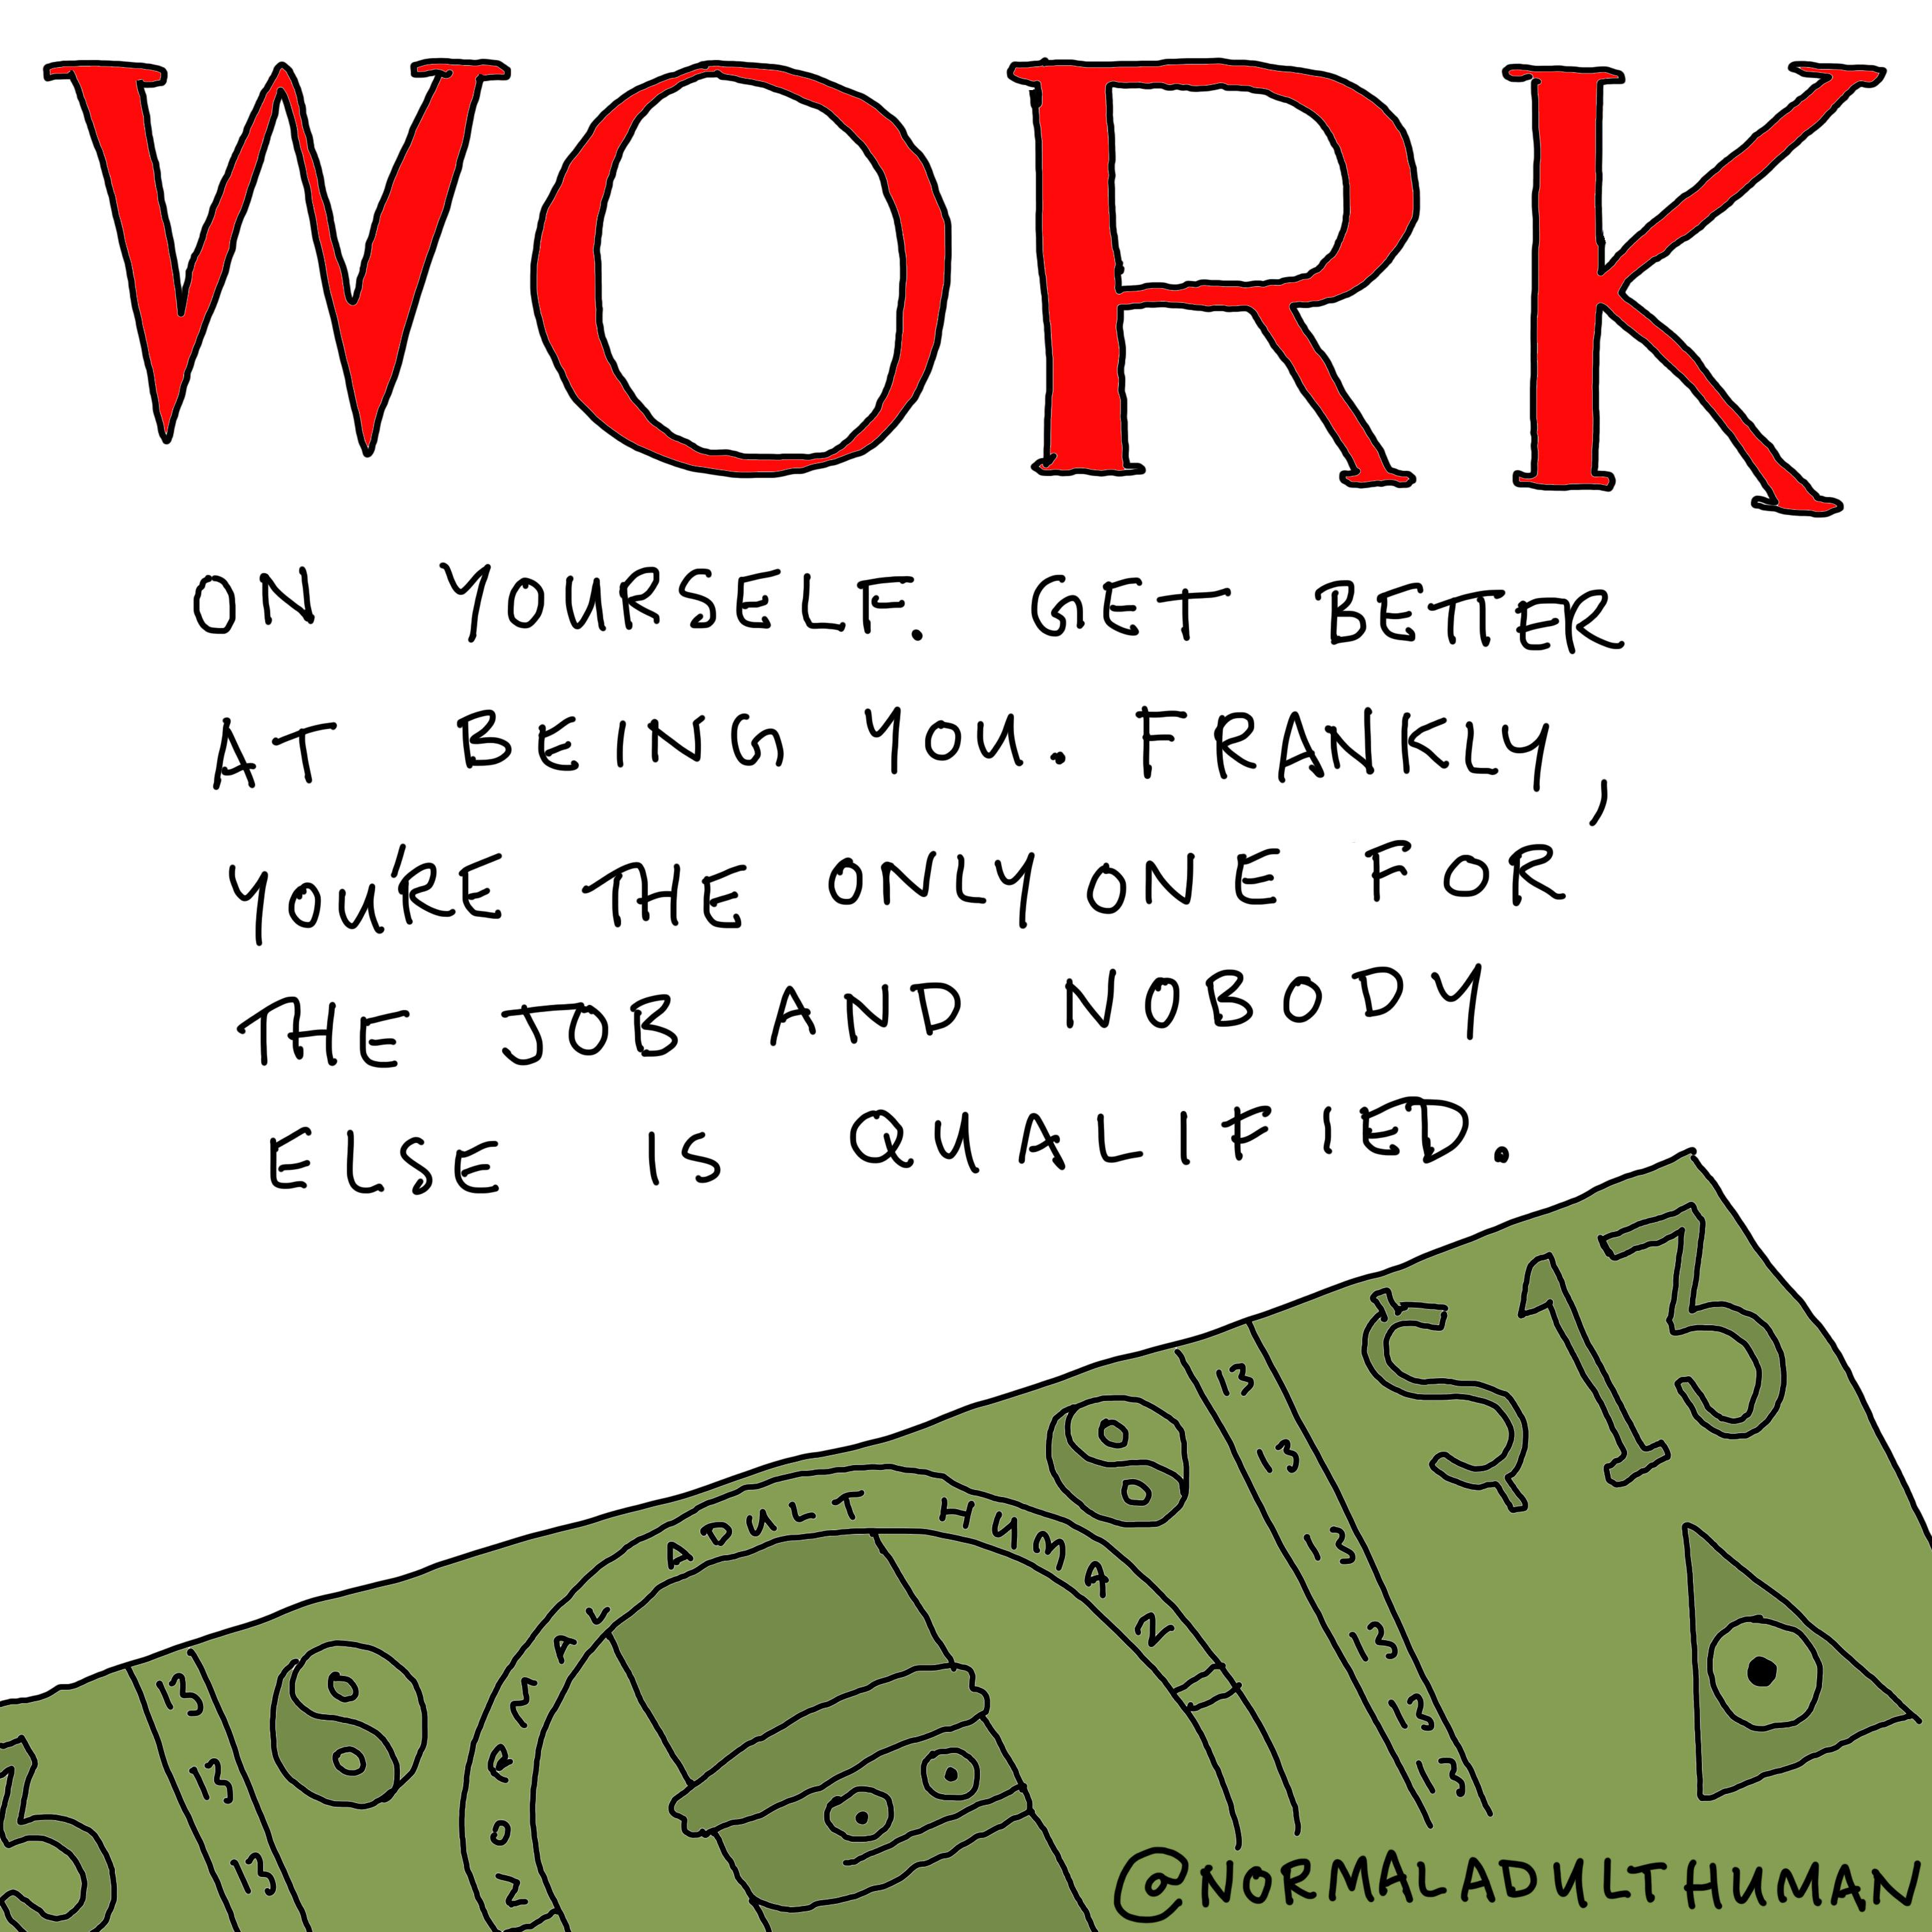 [IMAGE] You're hired!